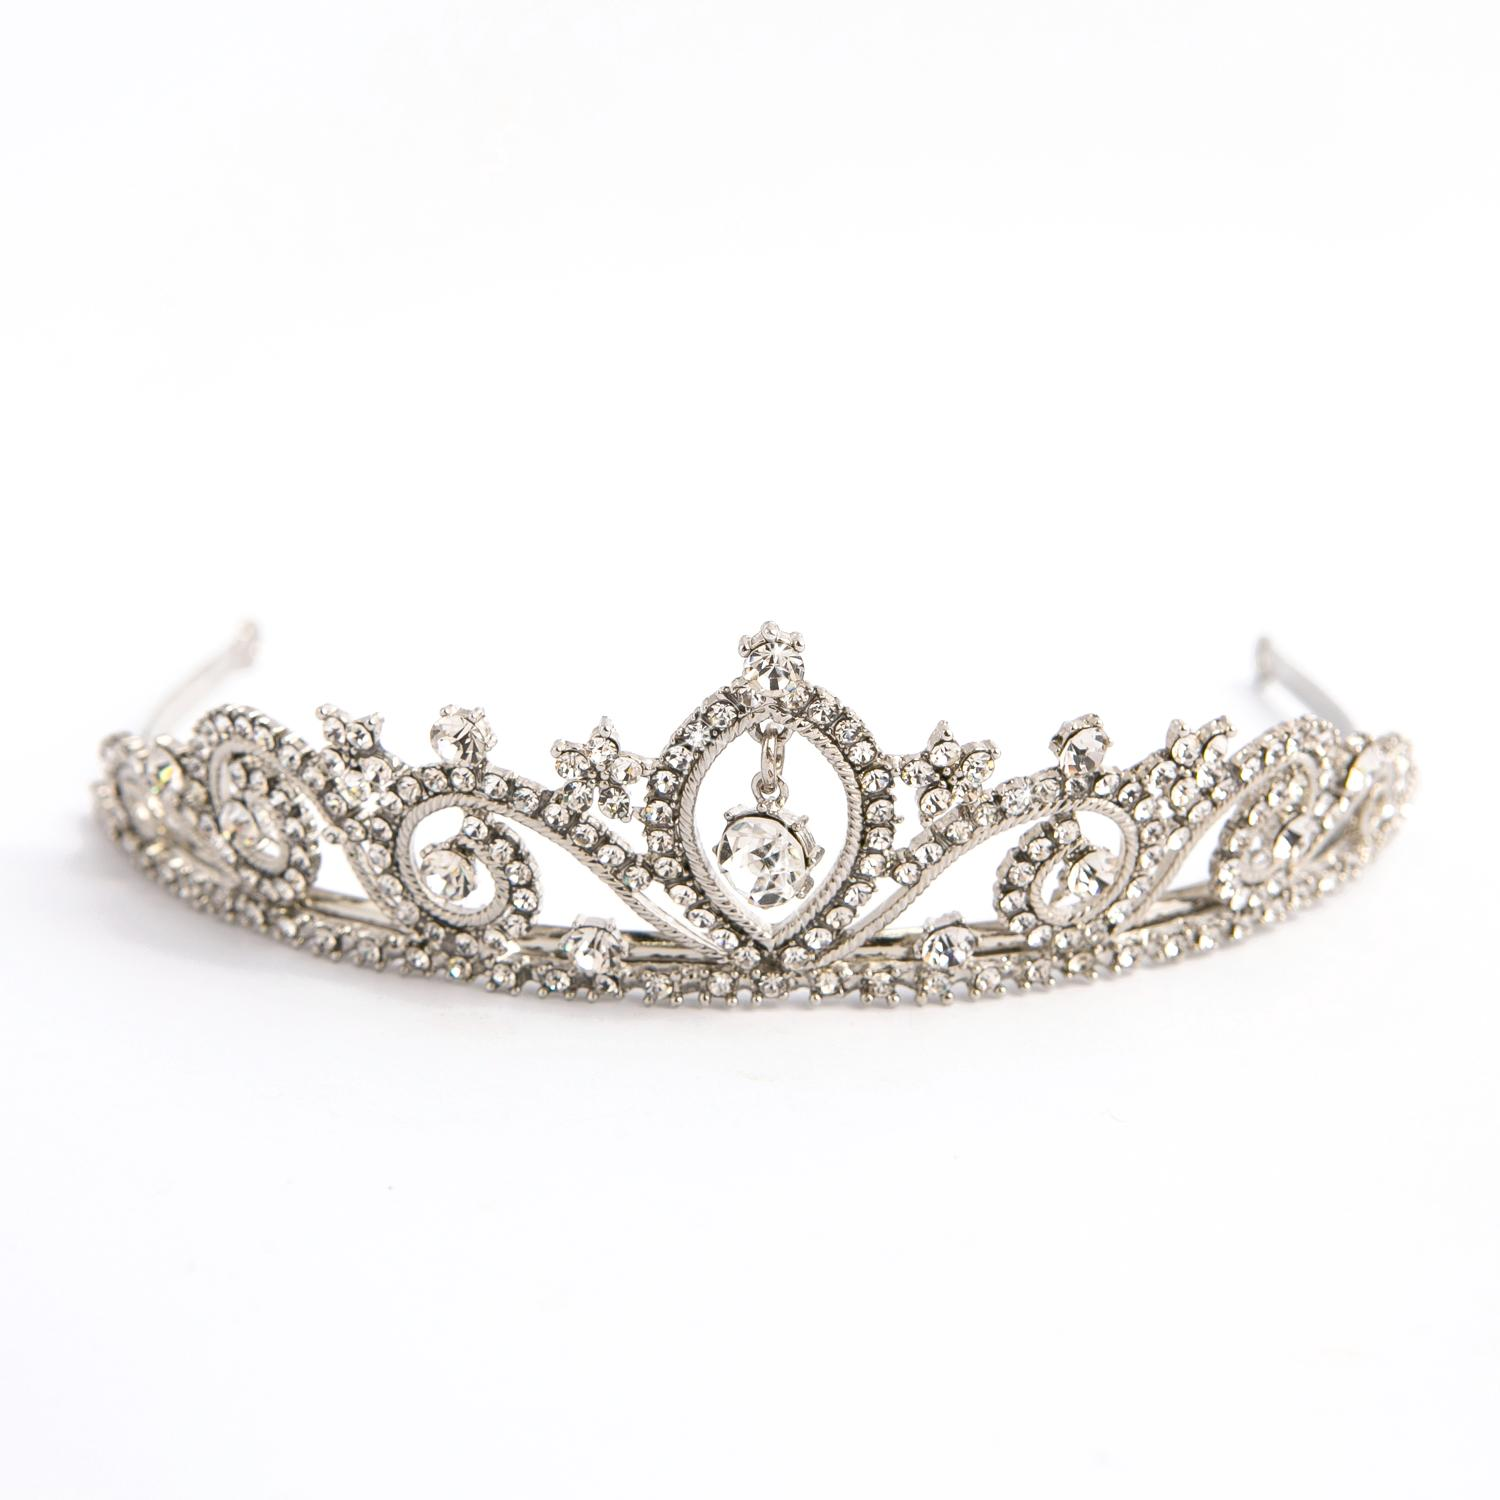 Silver Plated & Crystal Tiara